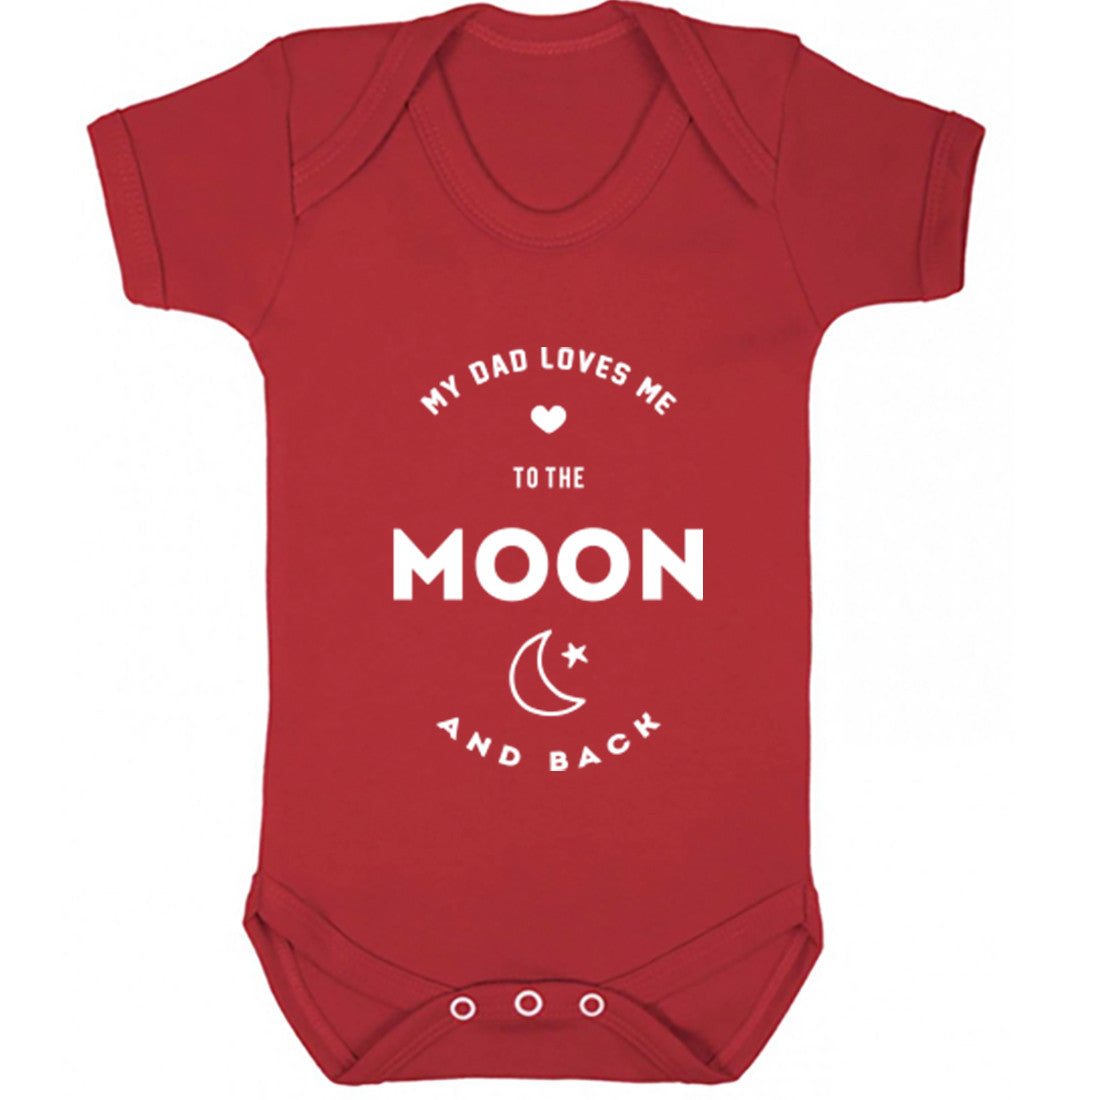 61c5f47c6 My Dad Loves Me To The Moon And Back Baby Vest K1540 – Illustrated ...